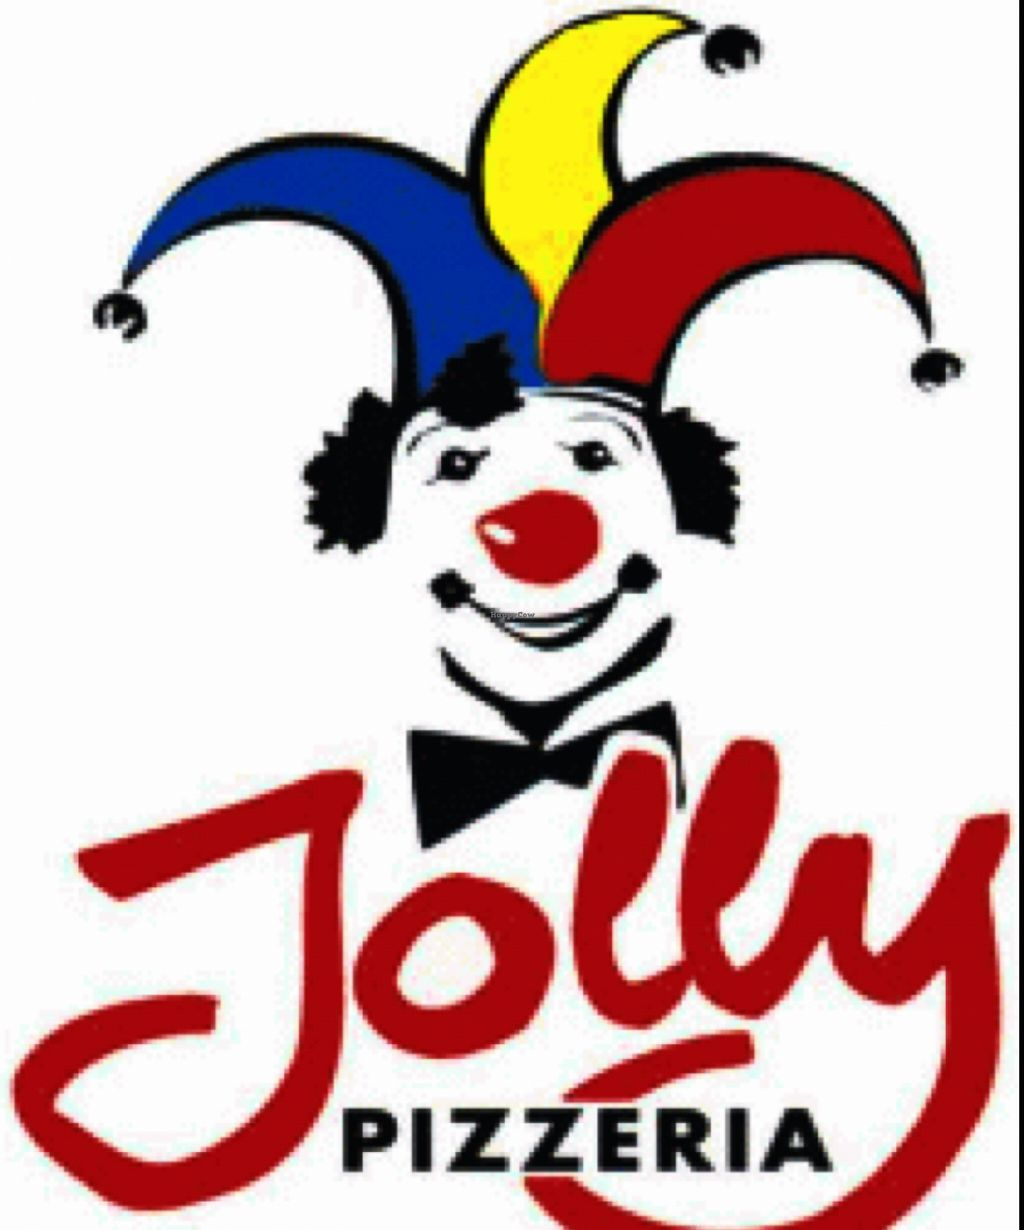 "Photo of Pizzeria Jolly  by <a href=""/members/profile/BobAC"">BobAC</a> <br/>Logo of Pizzeria Jolly <br/> November 8, 2015  - <a href='/contact/abuse/image/65275/124254'>Report</a>"